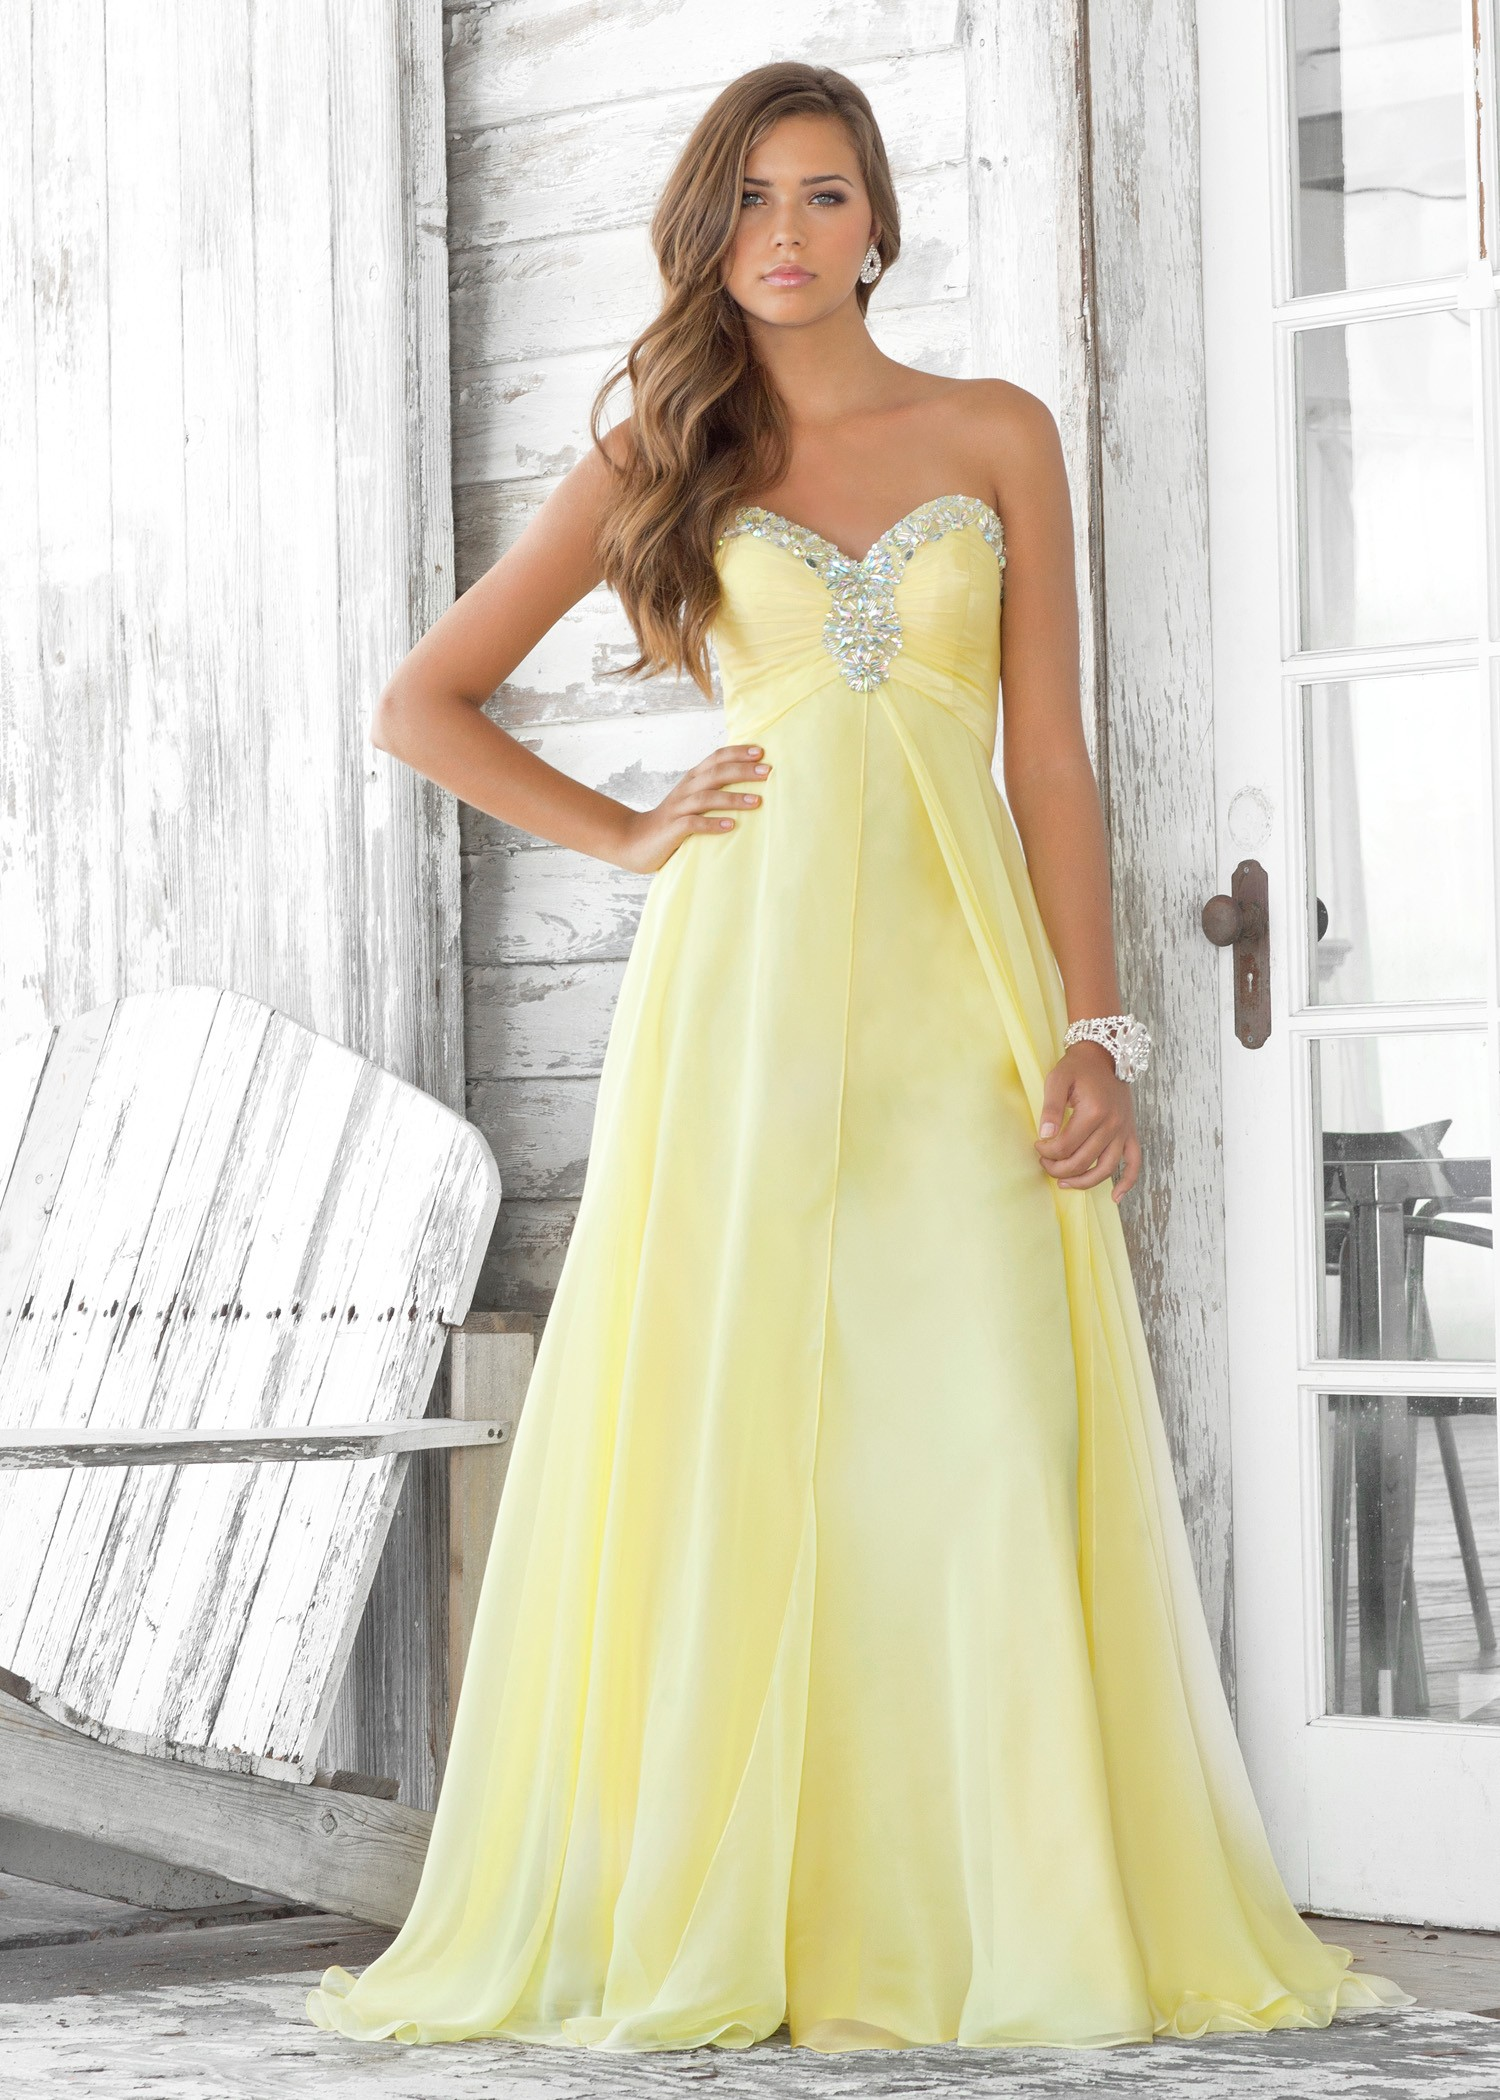 54 images about prom dresses on We Heart It | See more about prom ...